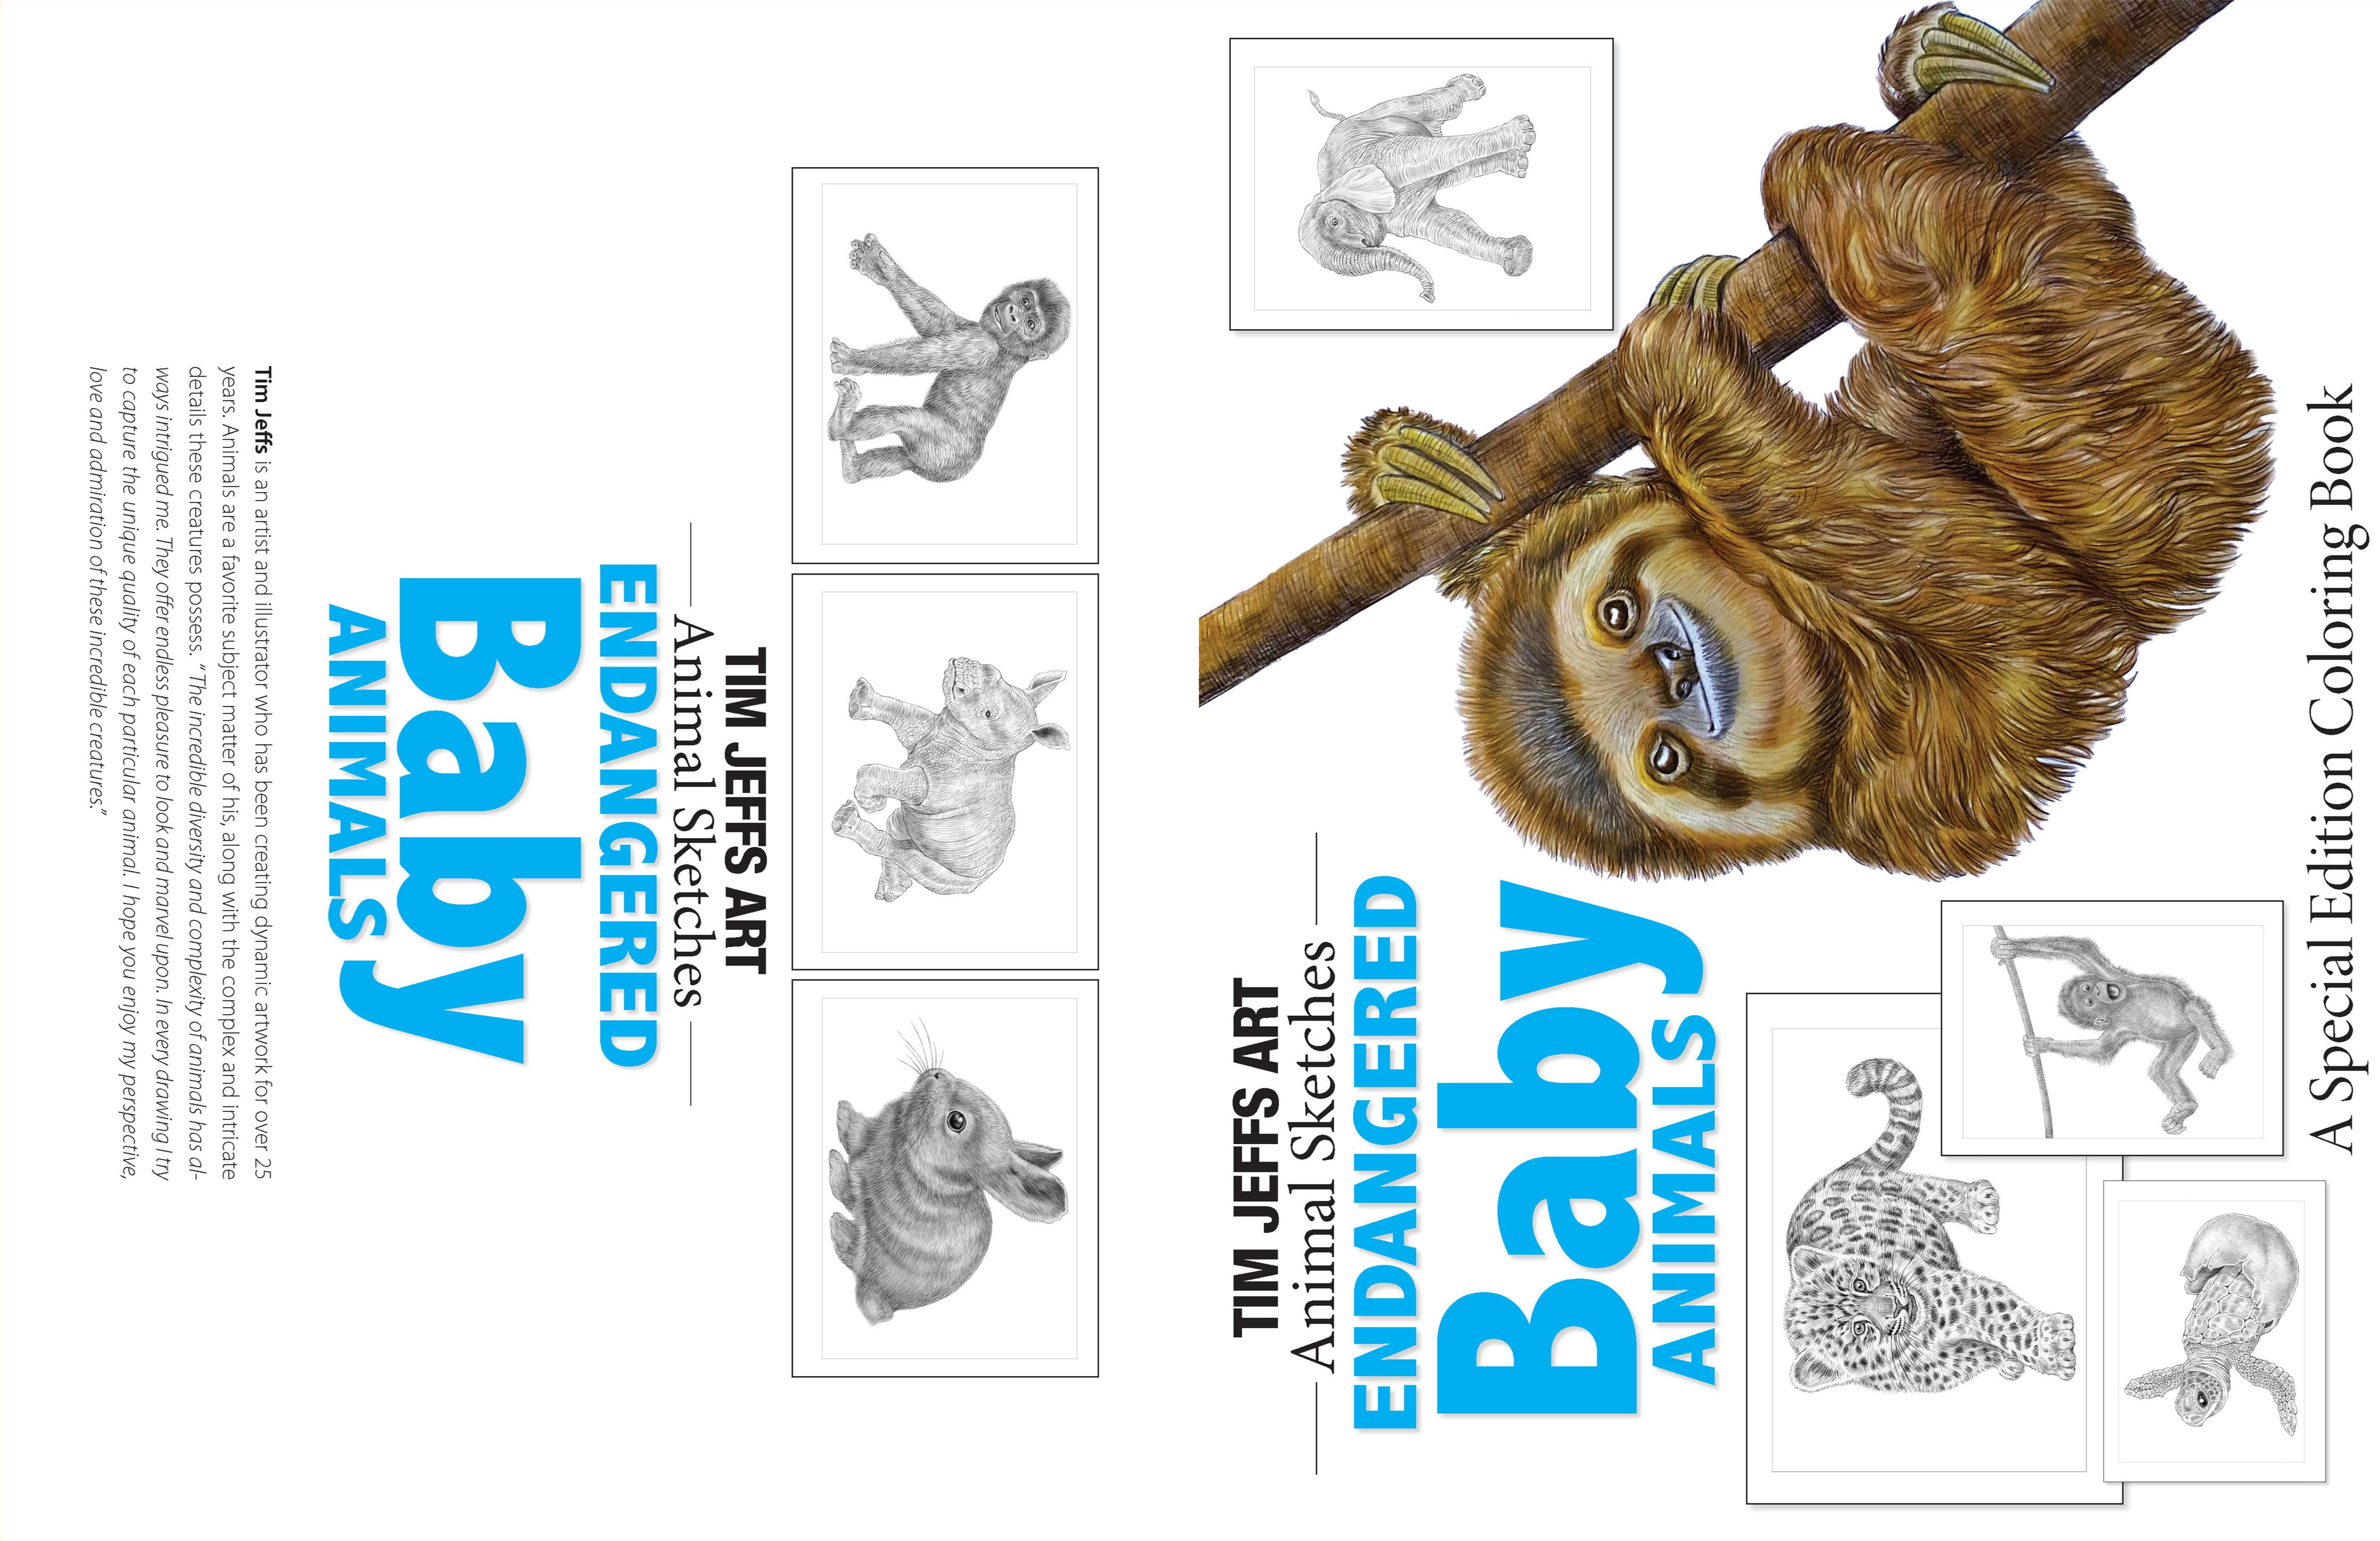 Endangered Baby Animals cover image